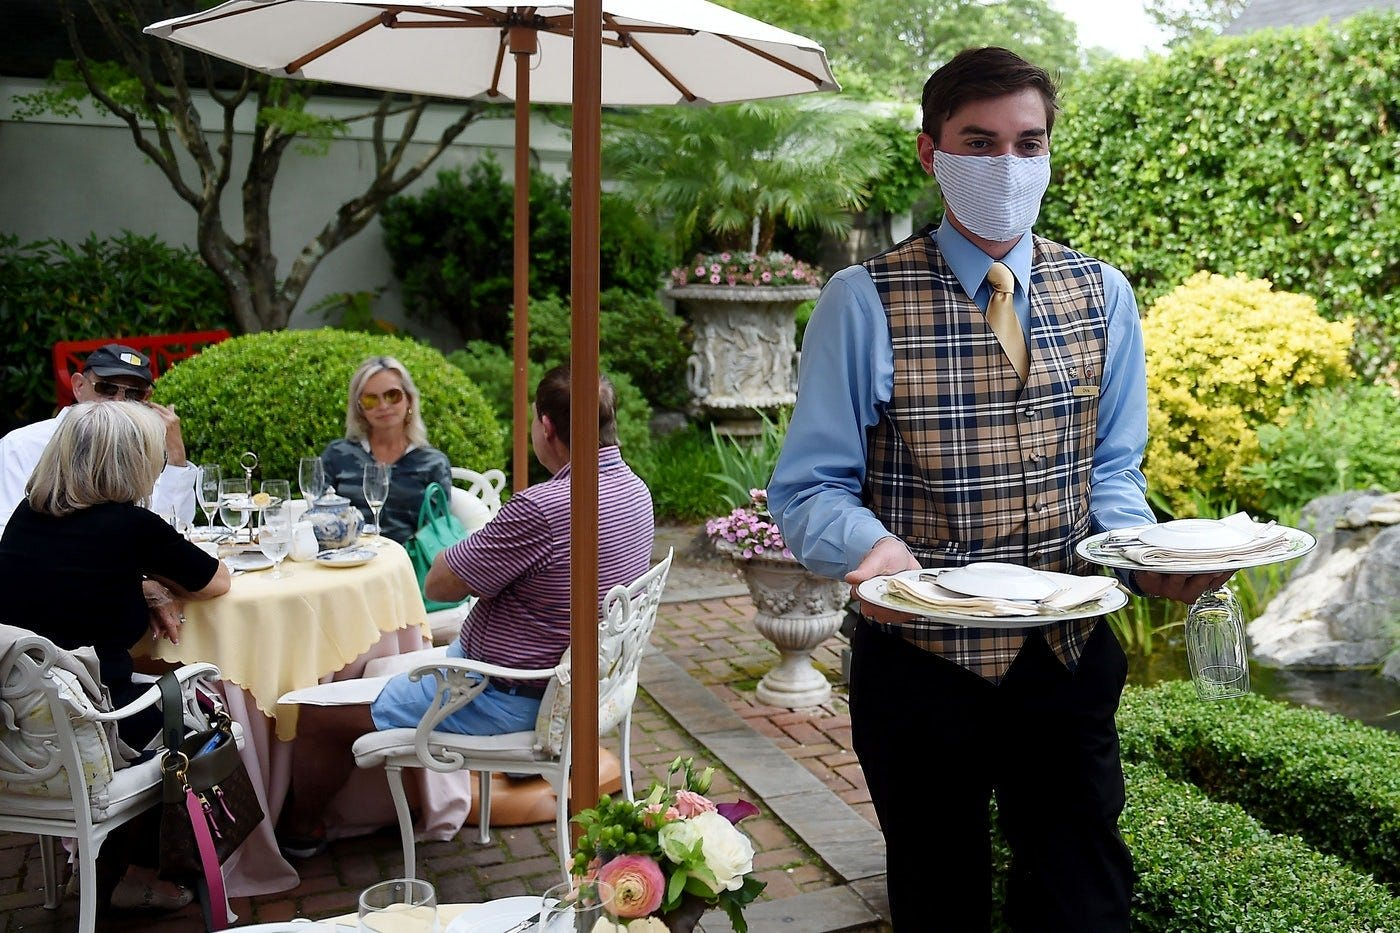 A masked waiter serves a group at an upscale restaurant in Virginia, days into its reopening amid the pandemic.